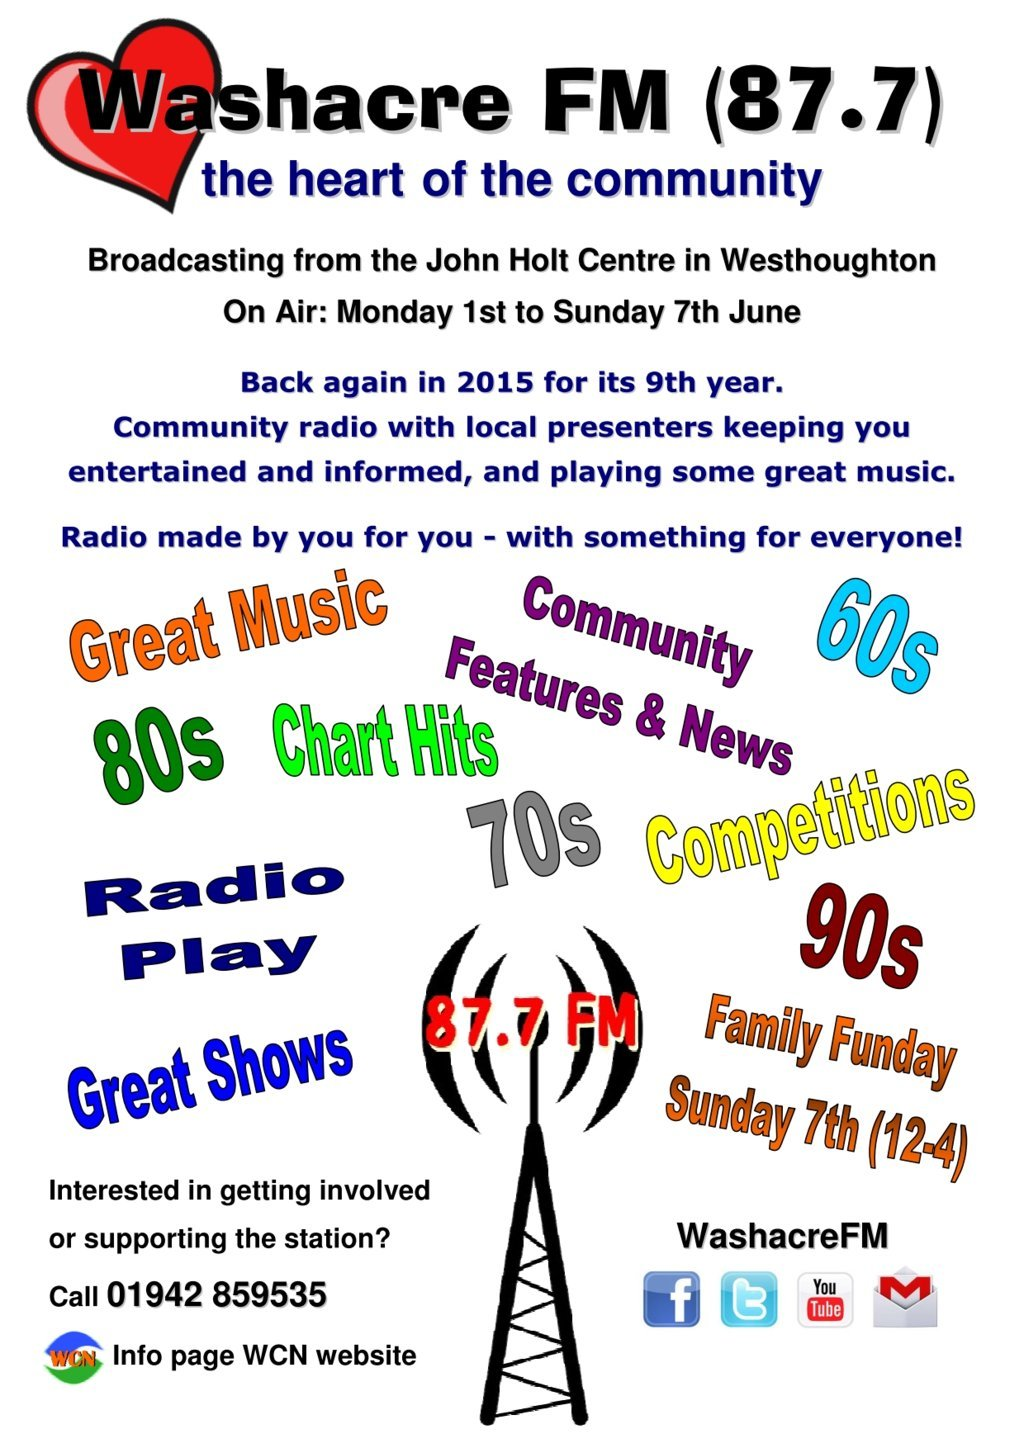 Washacre FM 2015 - Poster